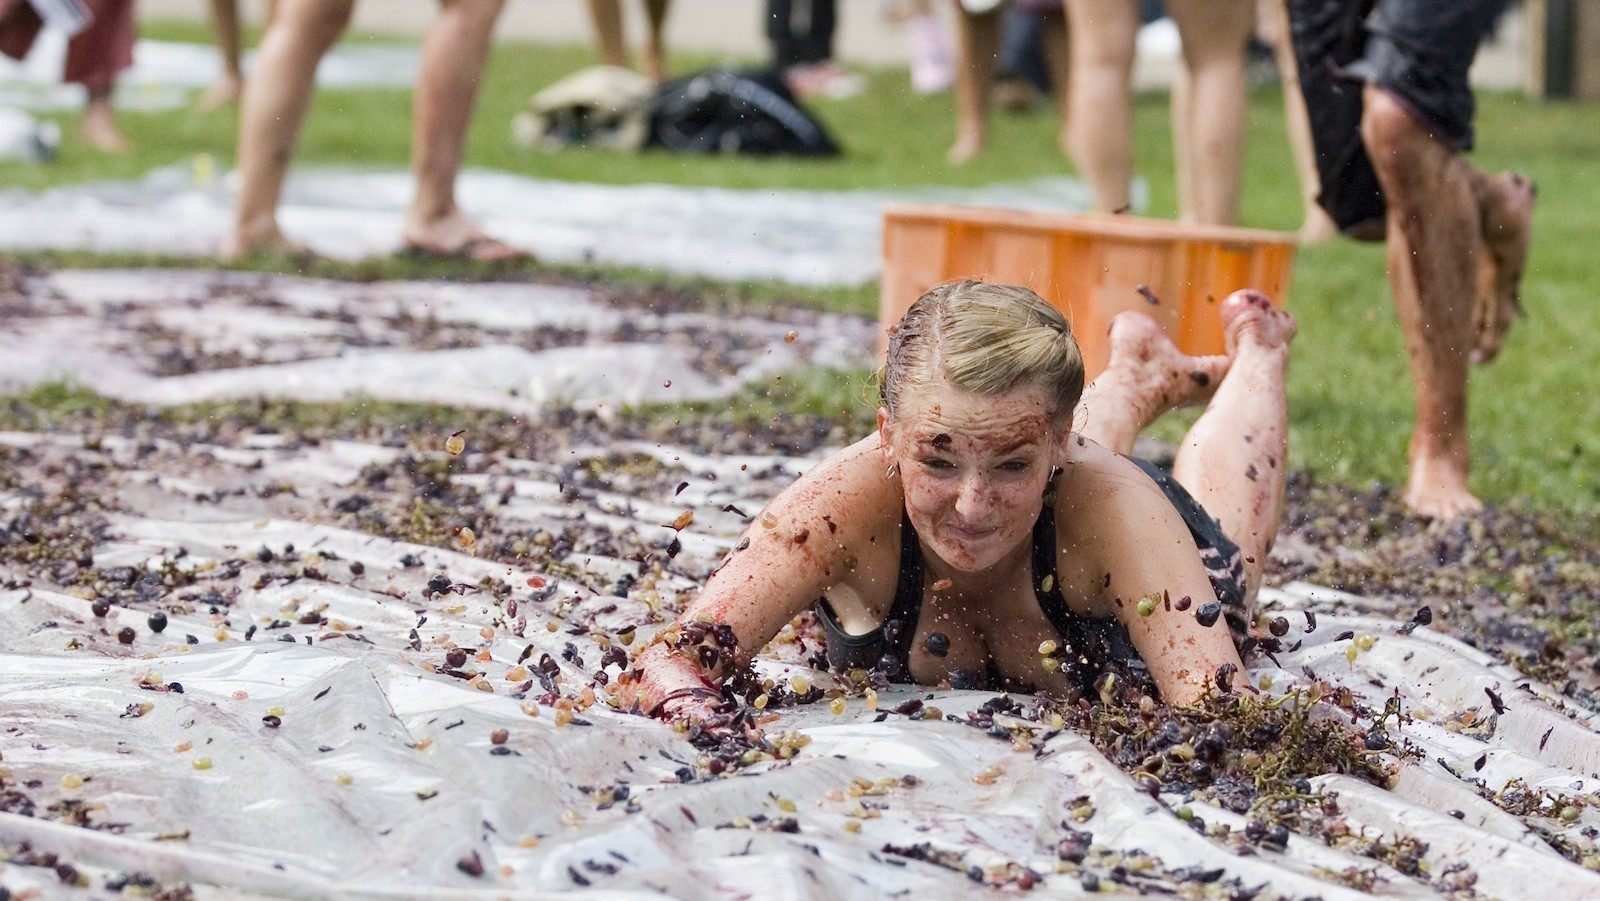 Grape Stomp Among Great Canadian Campus Traditions The Brock News - Canadian traditions